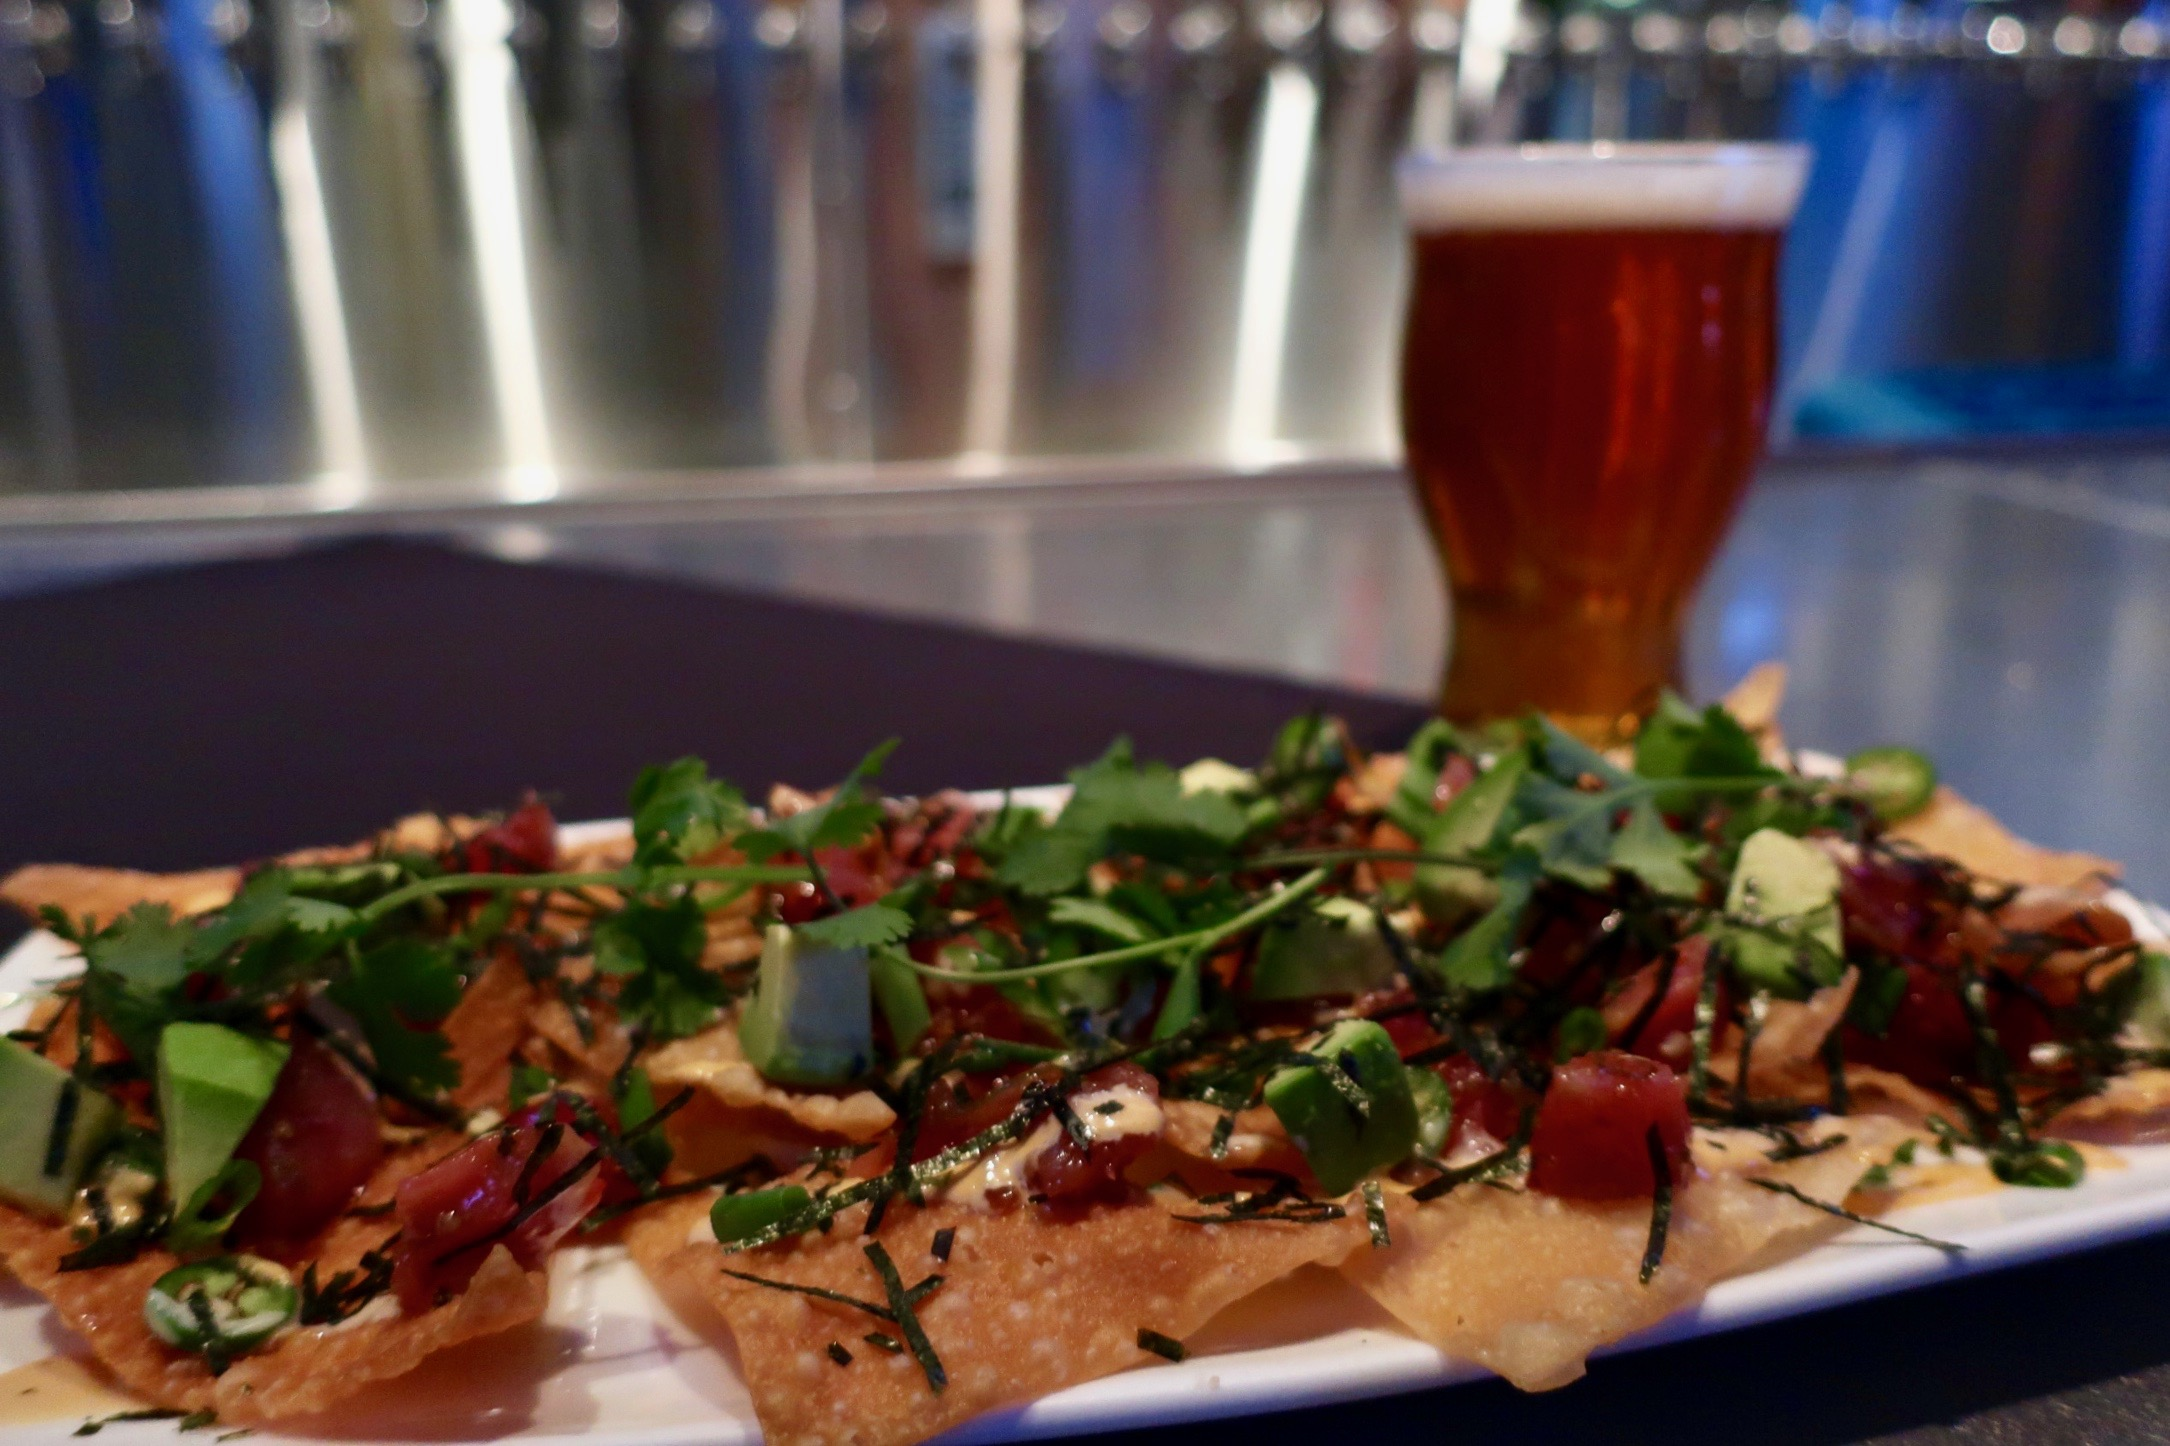 A highly recommended appetizer at Yard House is the Poke Nachos! Pairs nicely with Liquid Compass Double IPA.